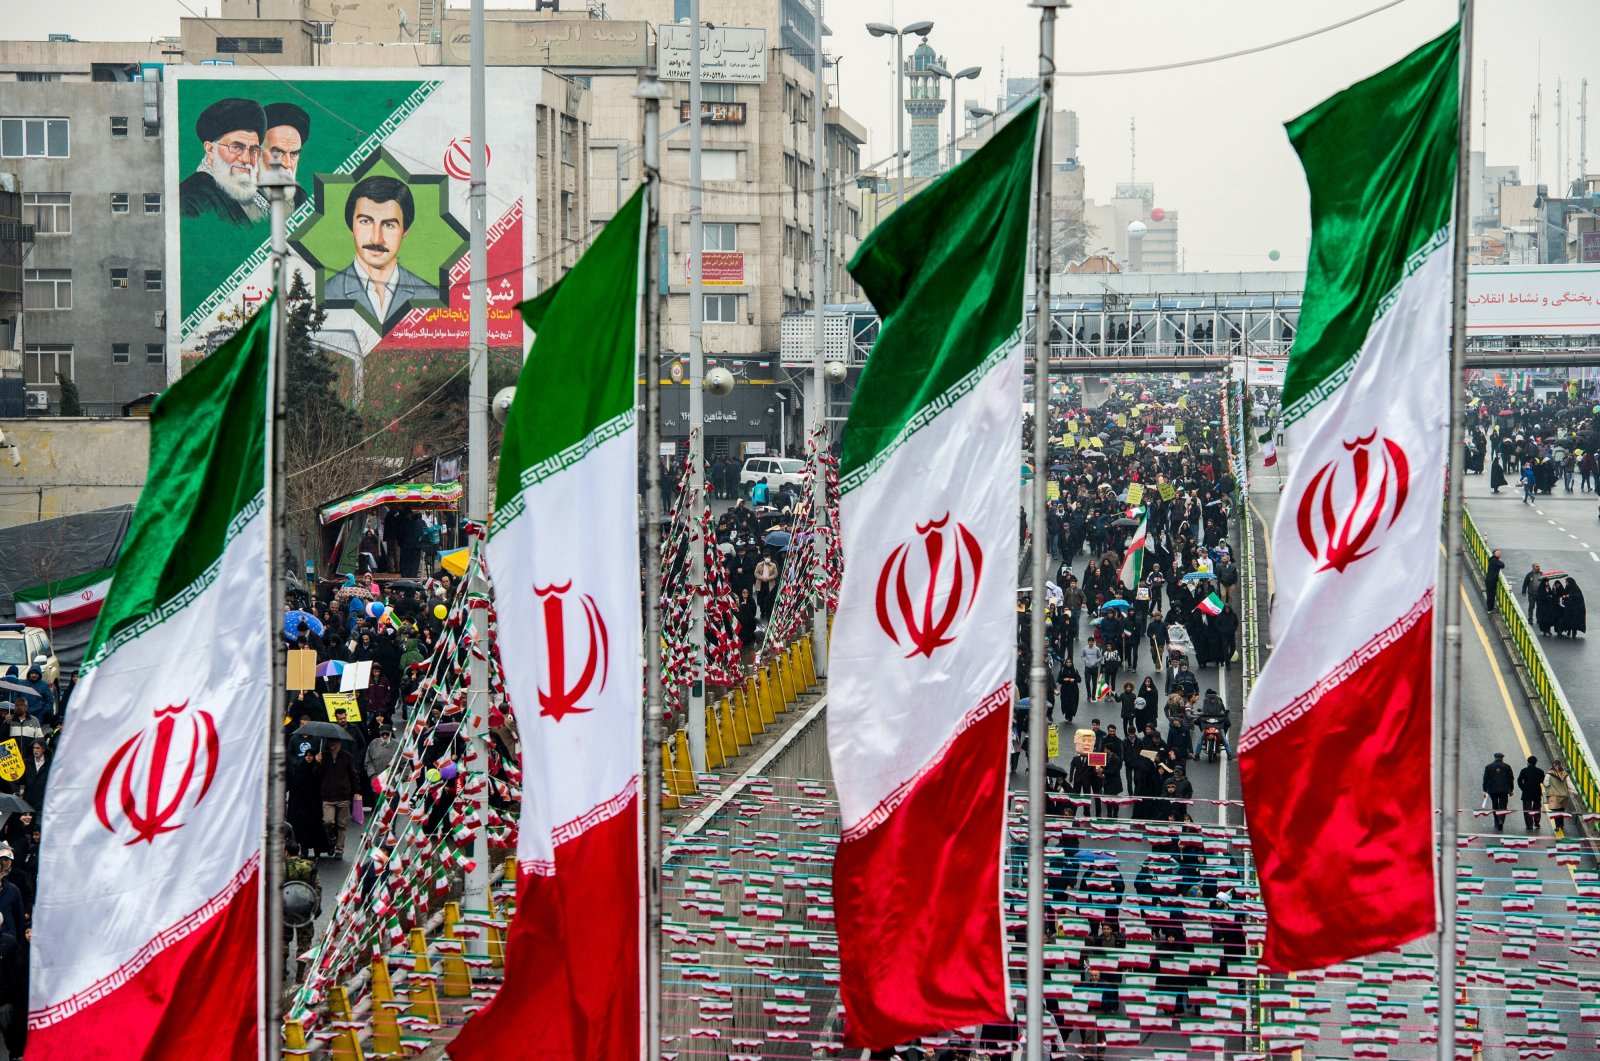 Demonstrators fill the street as Iranian national flag banners fly during the 40th anniversary of the Islamic revolution in Tehran, Iran, Feb. 11, 2019. (Photo by Getty Images)